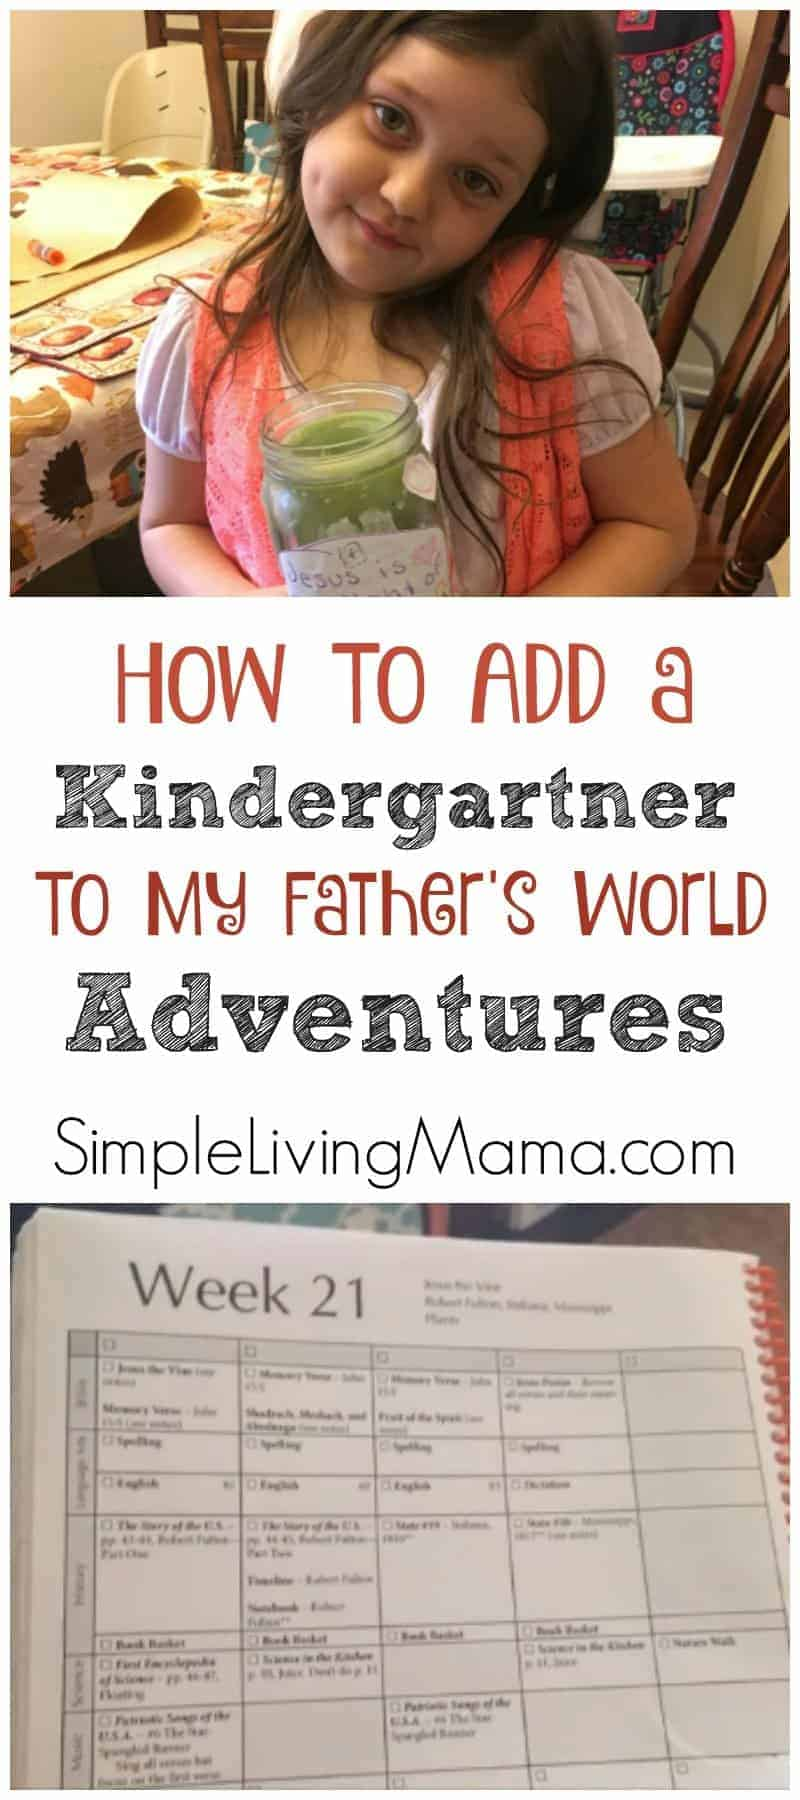 Adding a kindergartner to mfw adventures